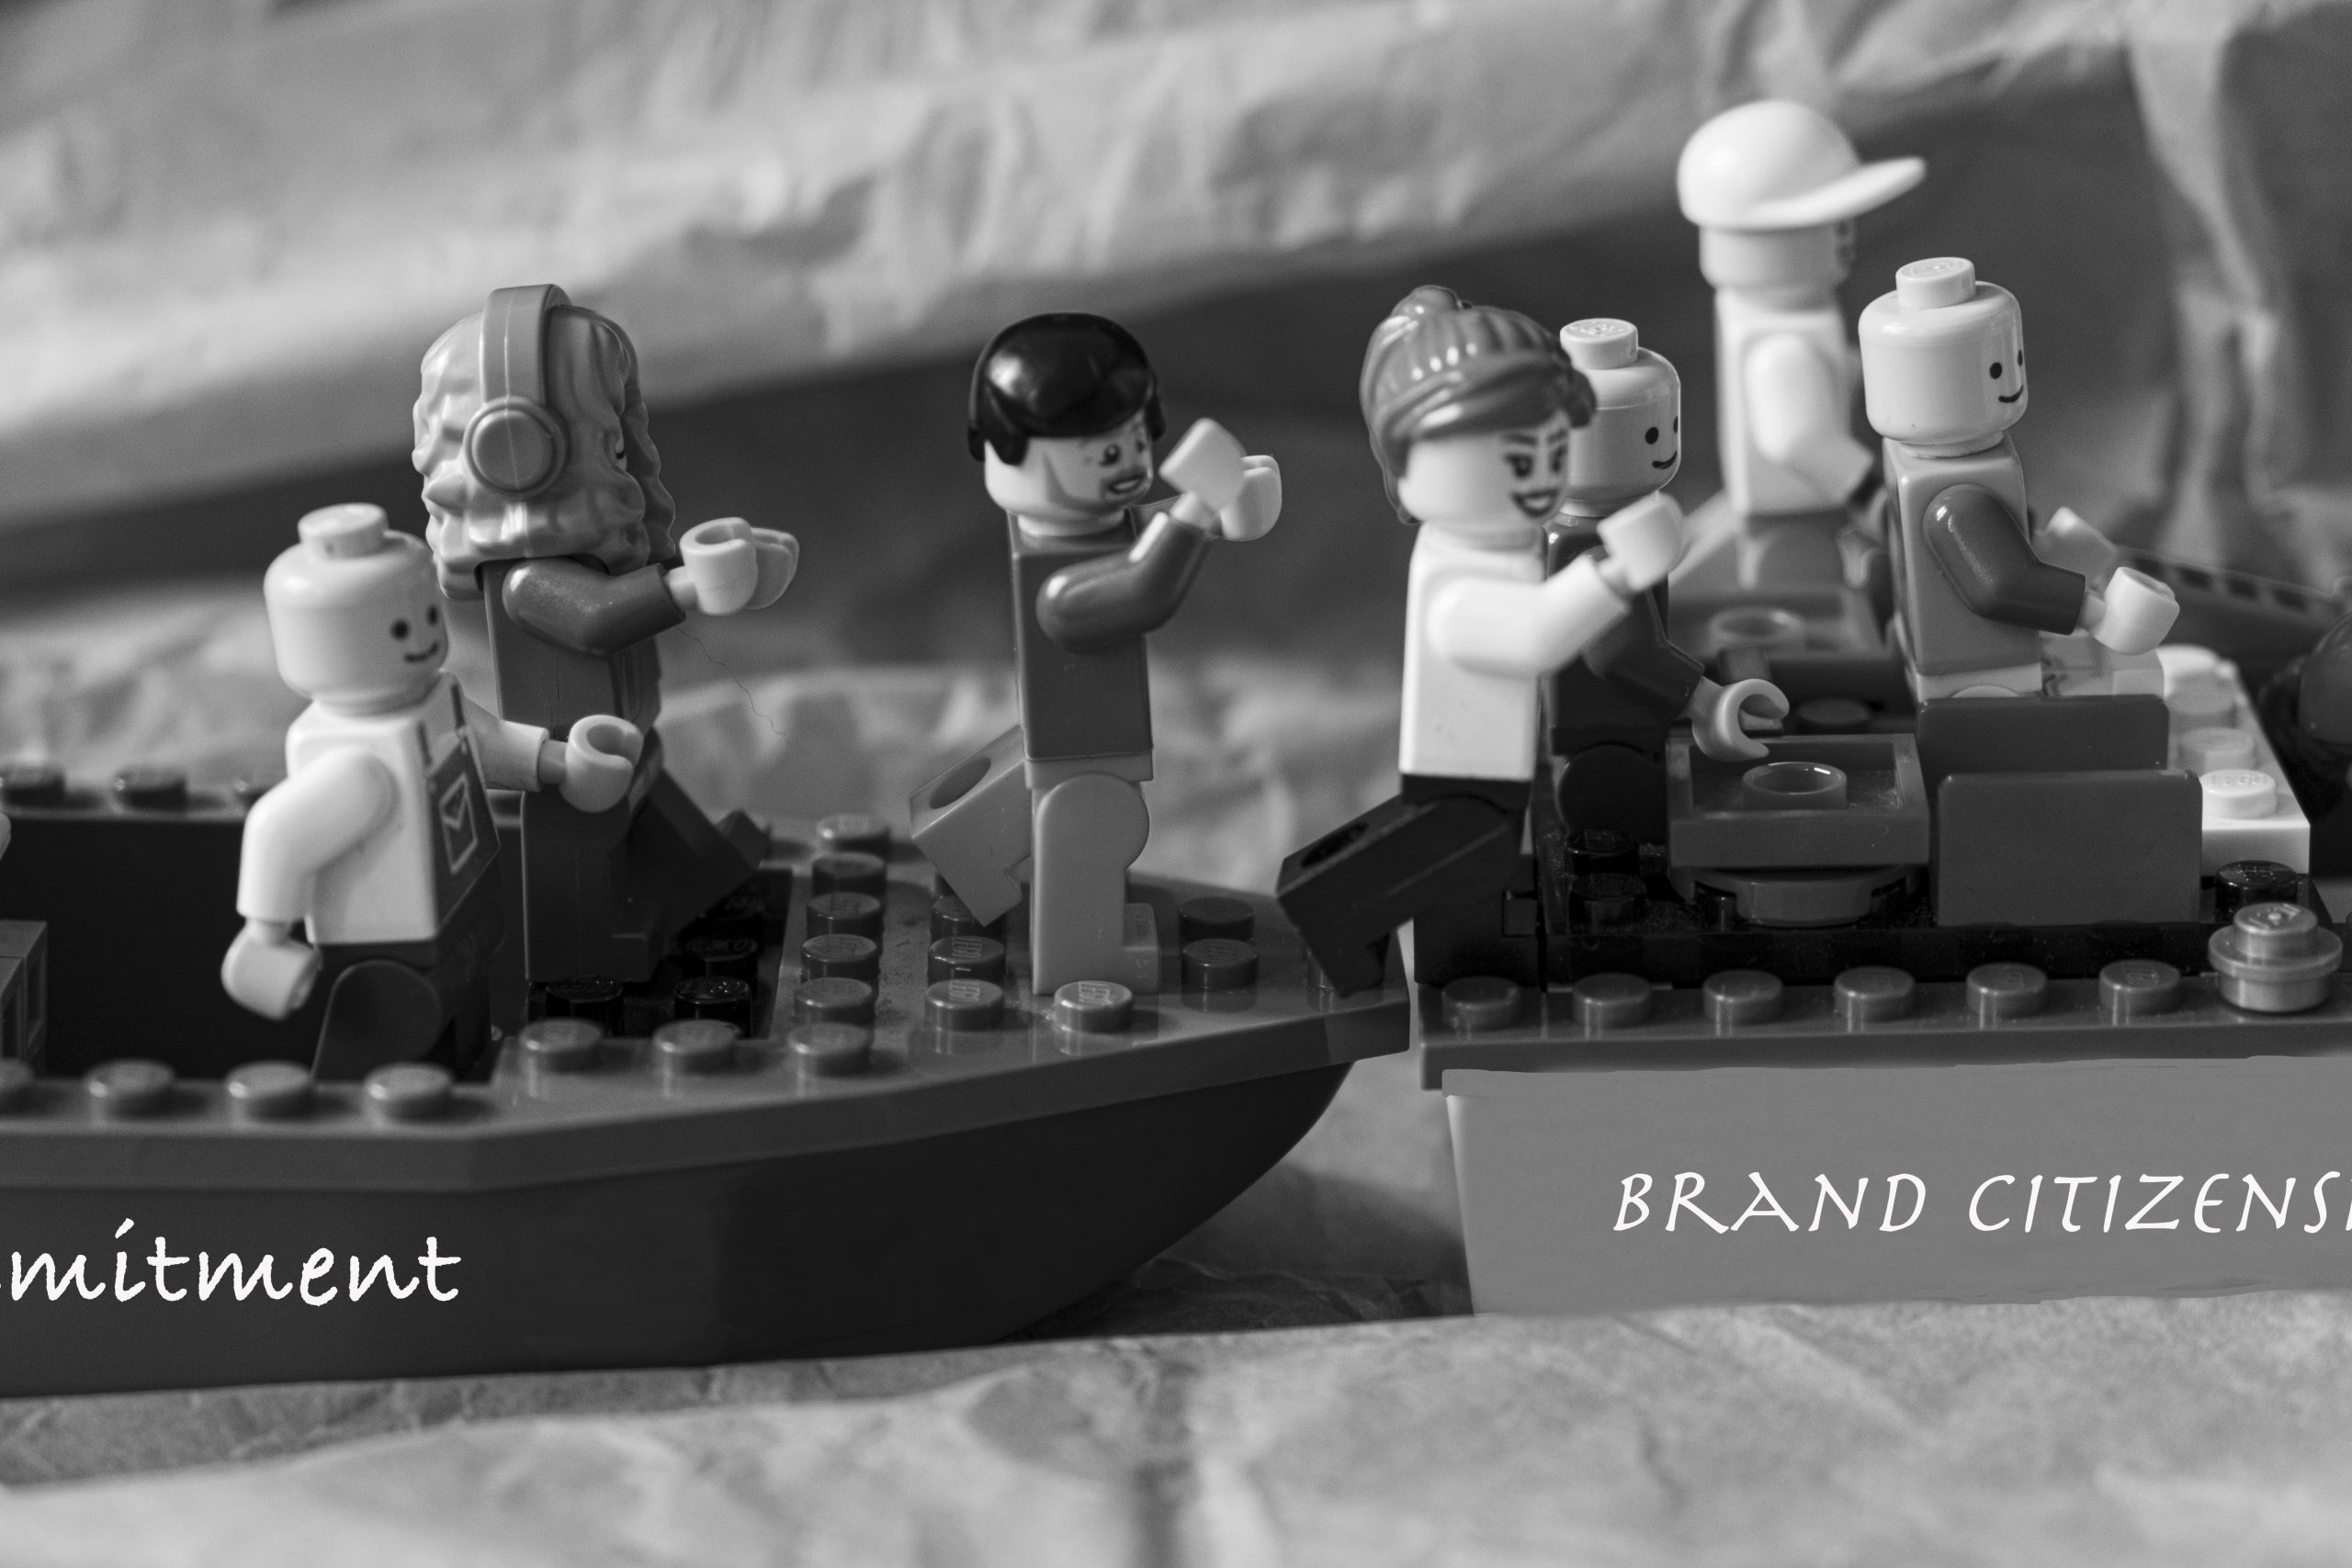 """Brick figures move from the """"Brand Commitment"""" boat to the """"Brand Citizenship Behaviour"""" boat"""